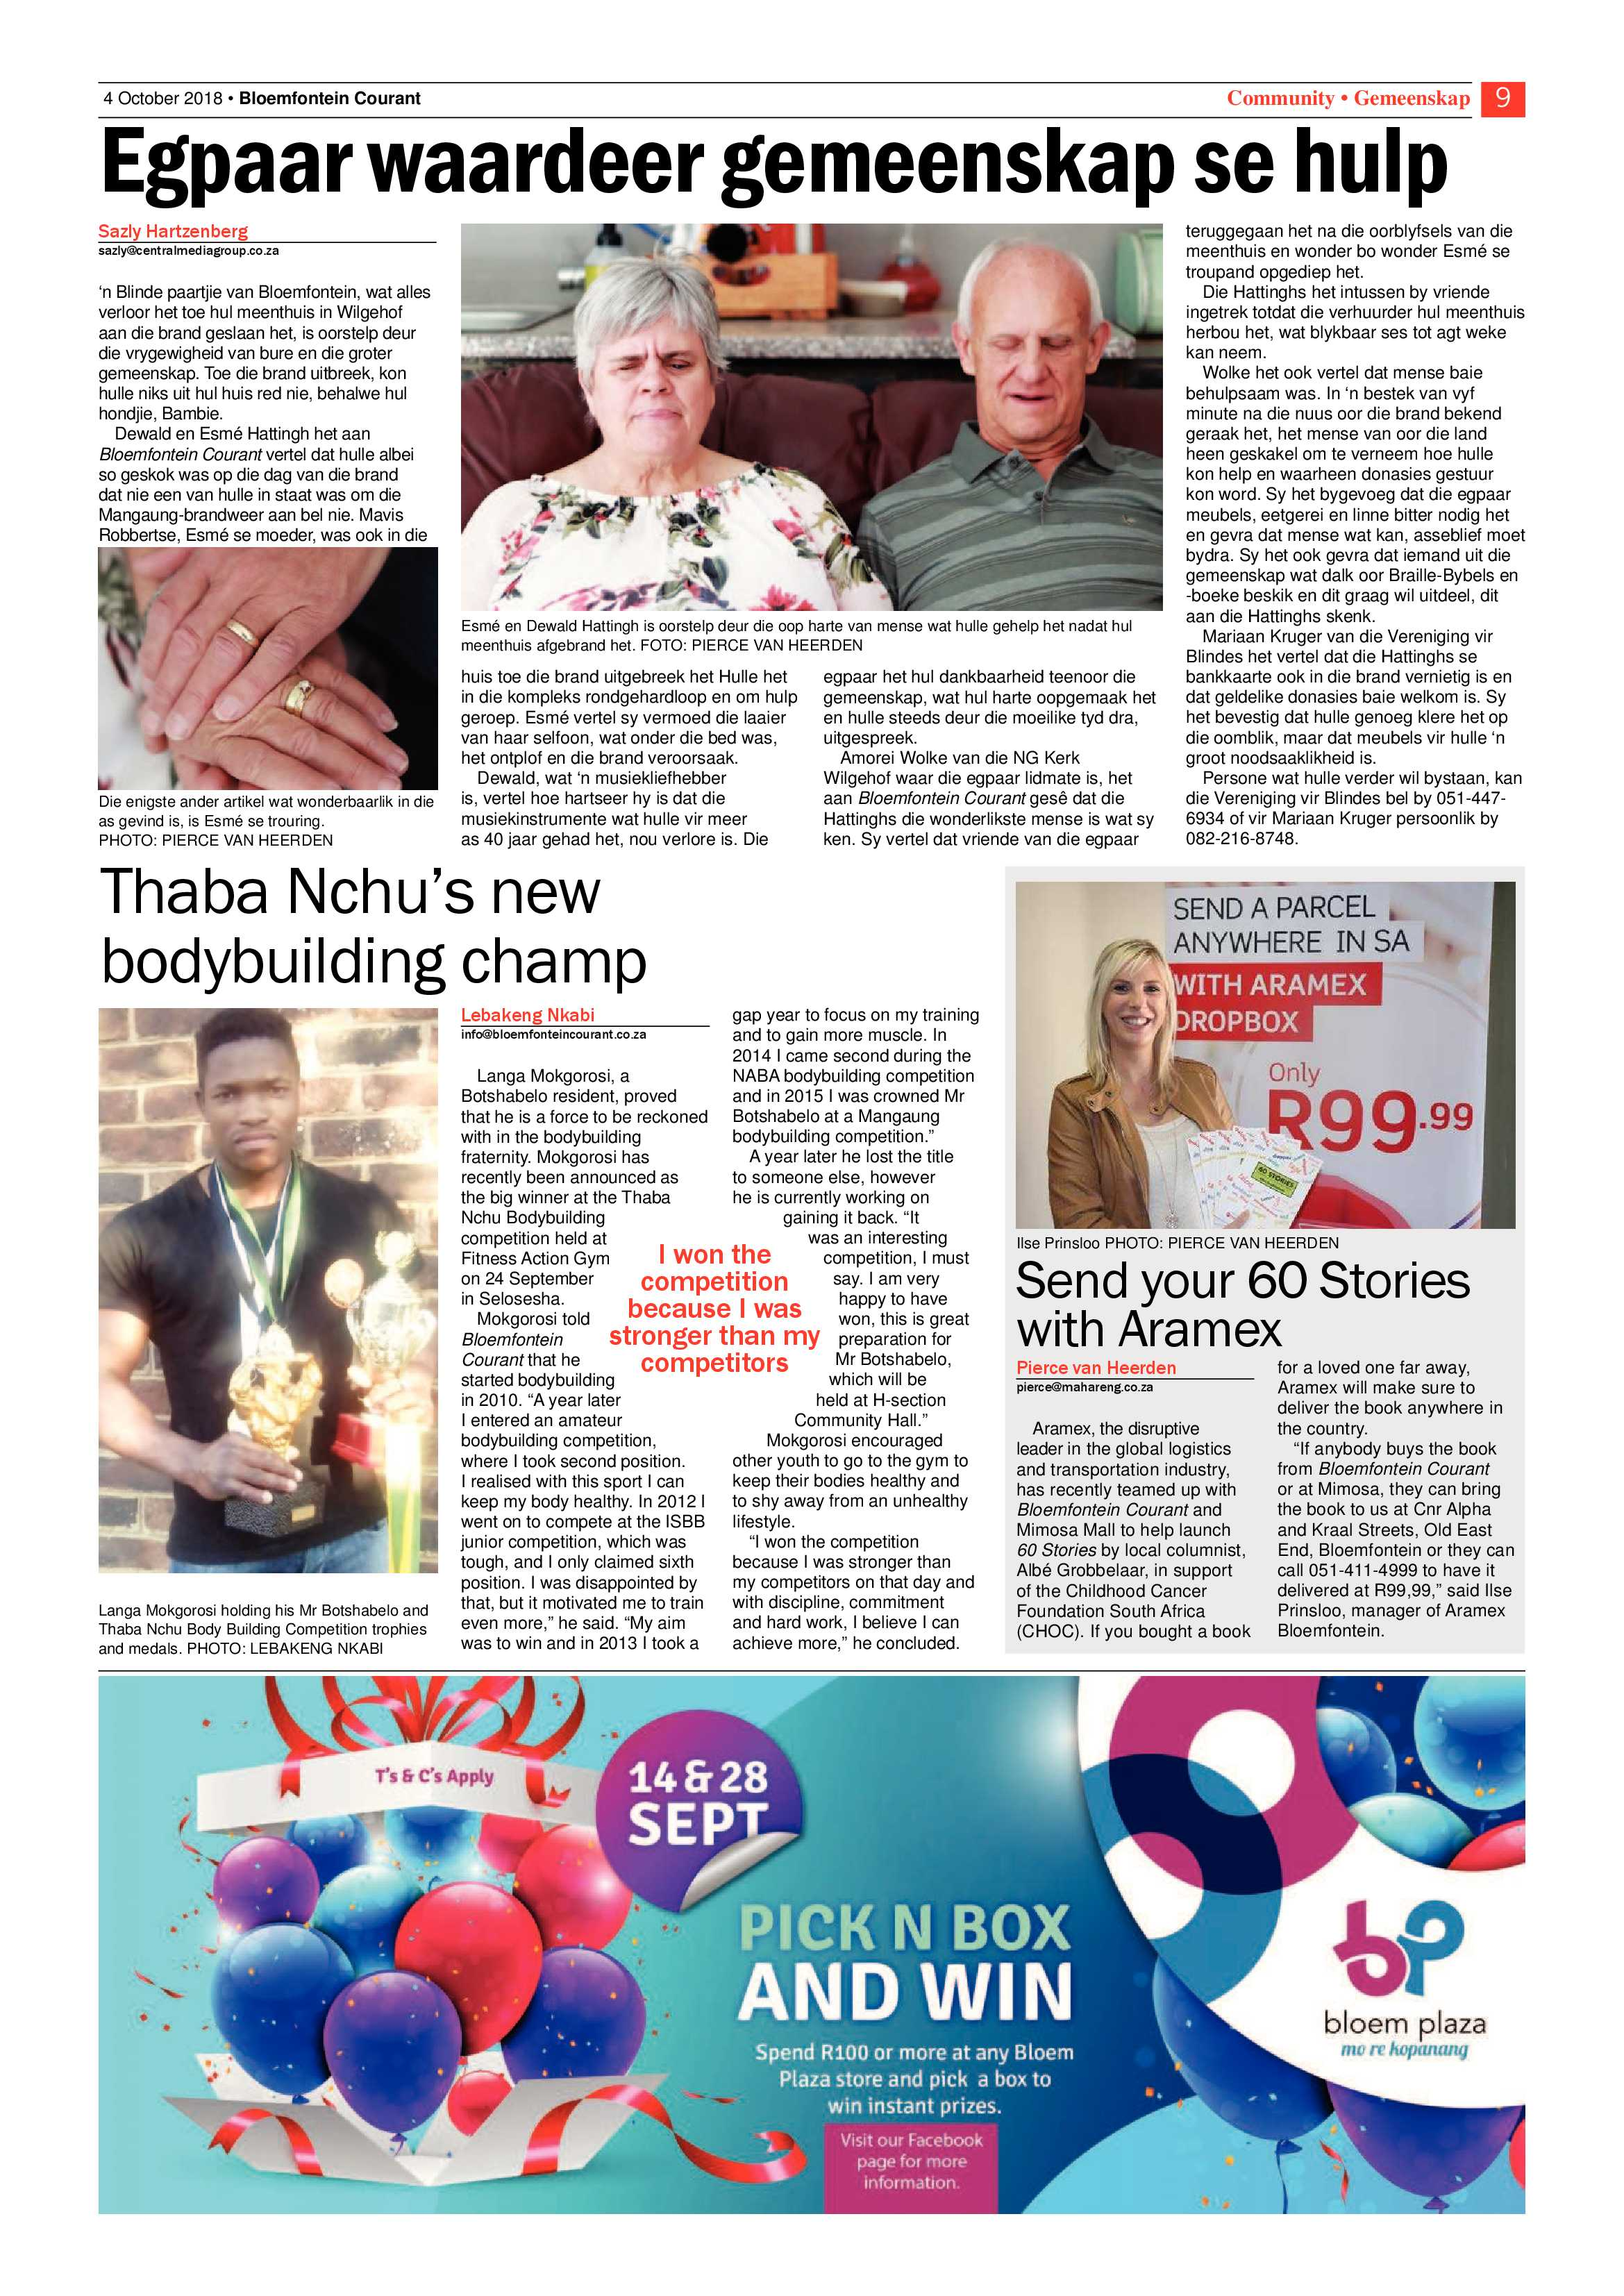 courant-04-october-2018-epapers-page-9